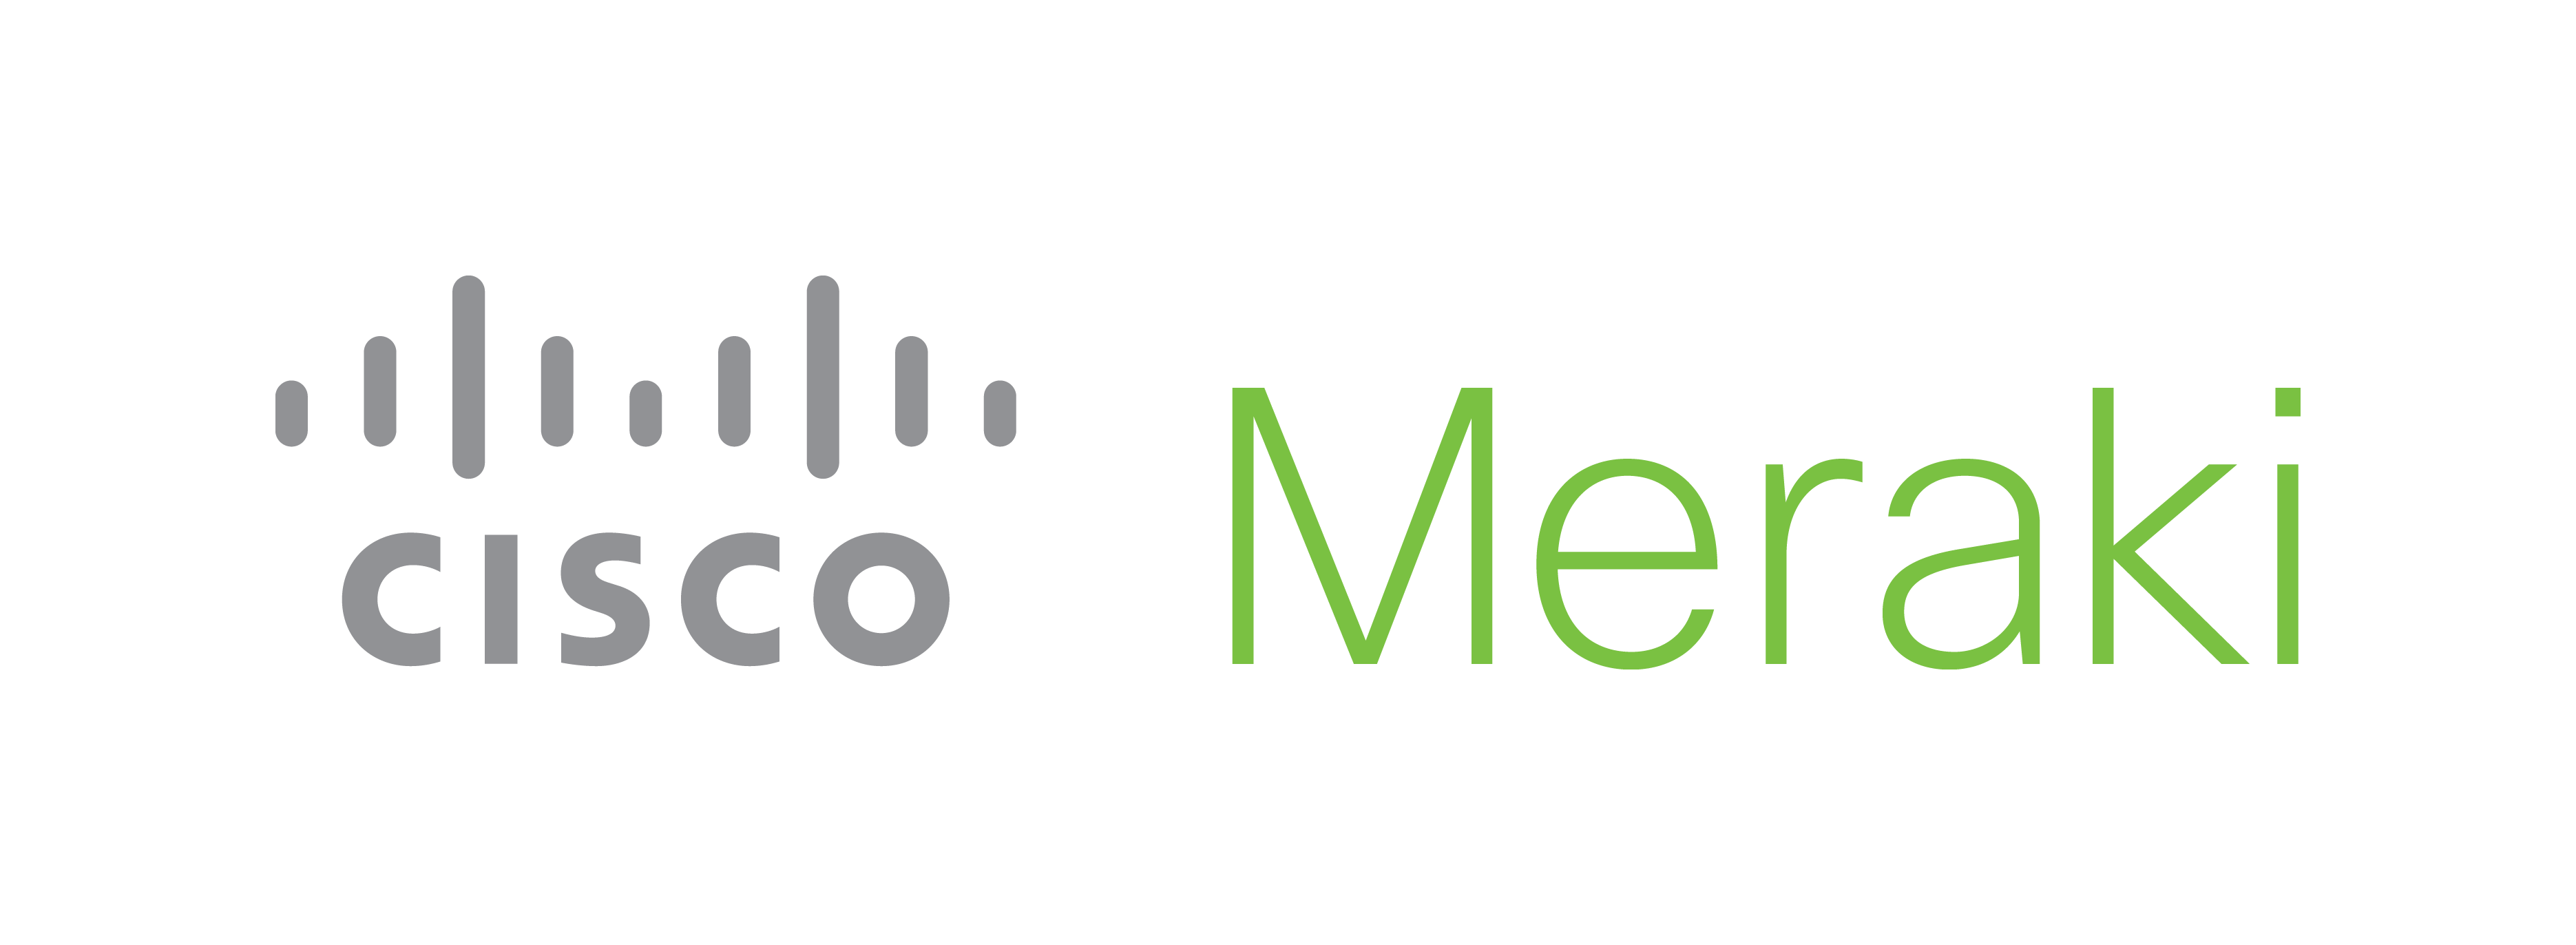 Cisco Meraki Partner in Portland Oregon Matrix Networks